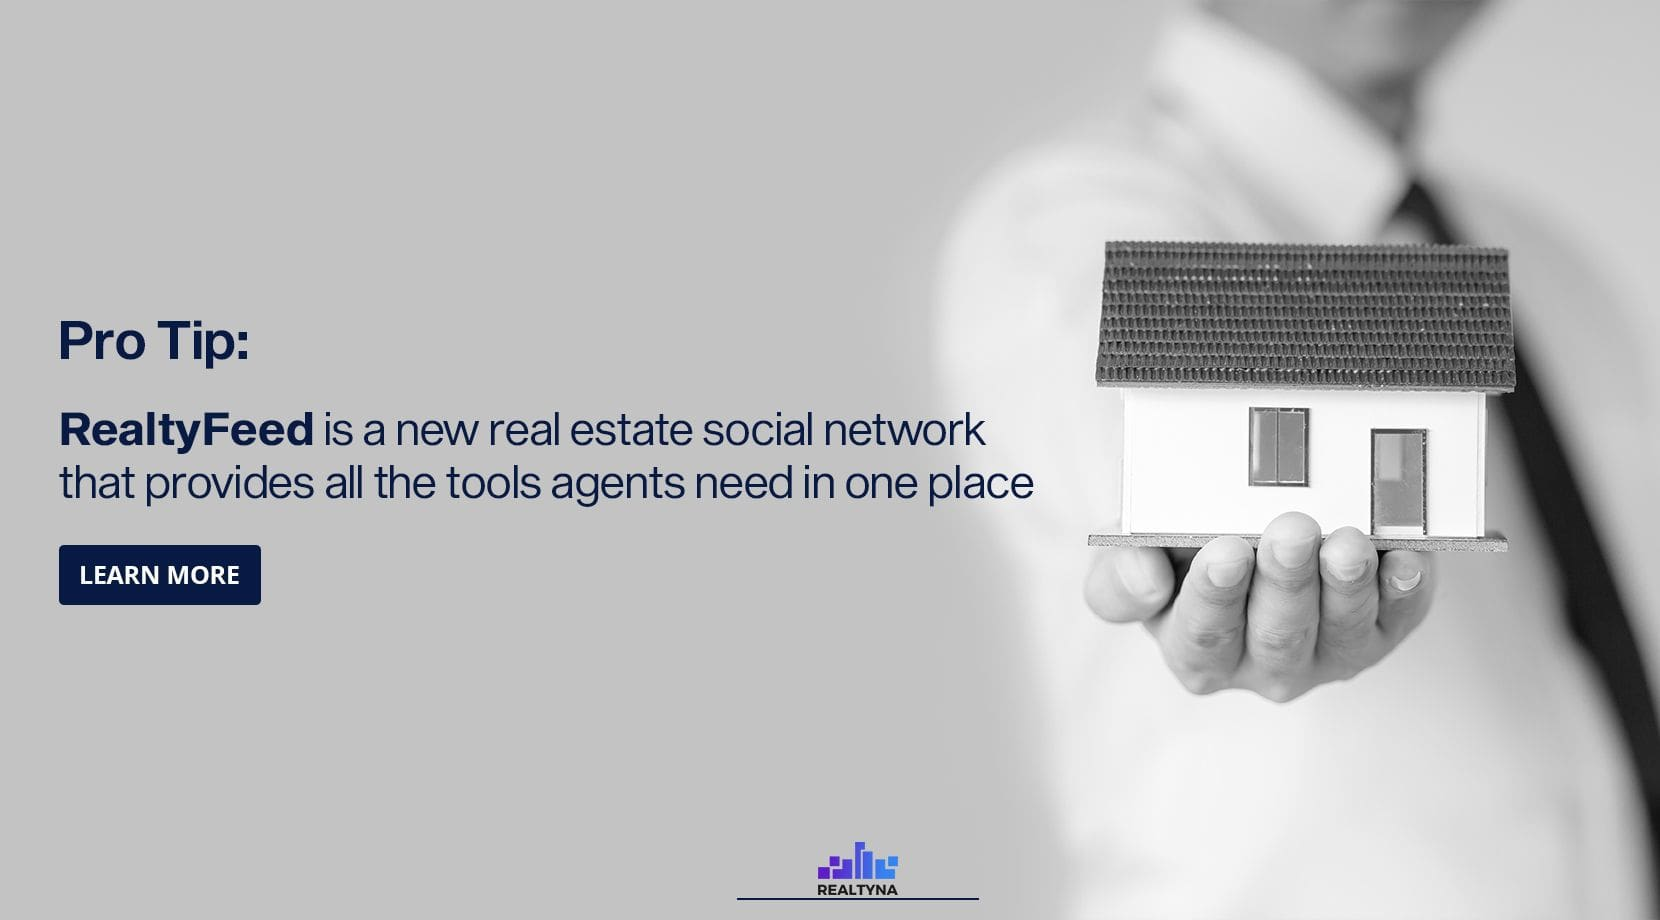 RealtyFeed is a new real estate social network that provides all the tools agents need in one place